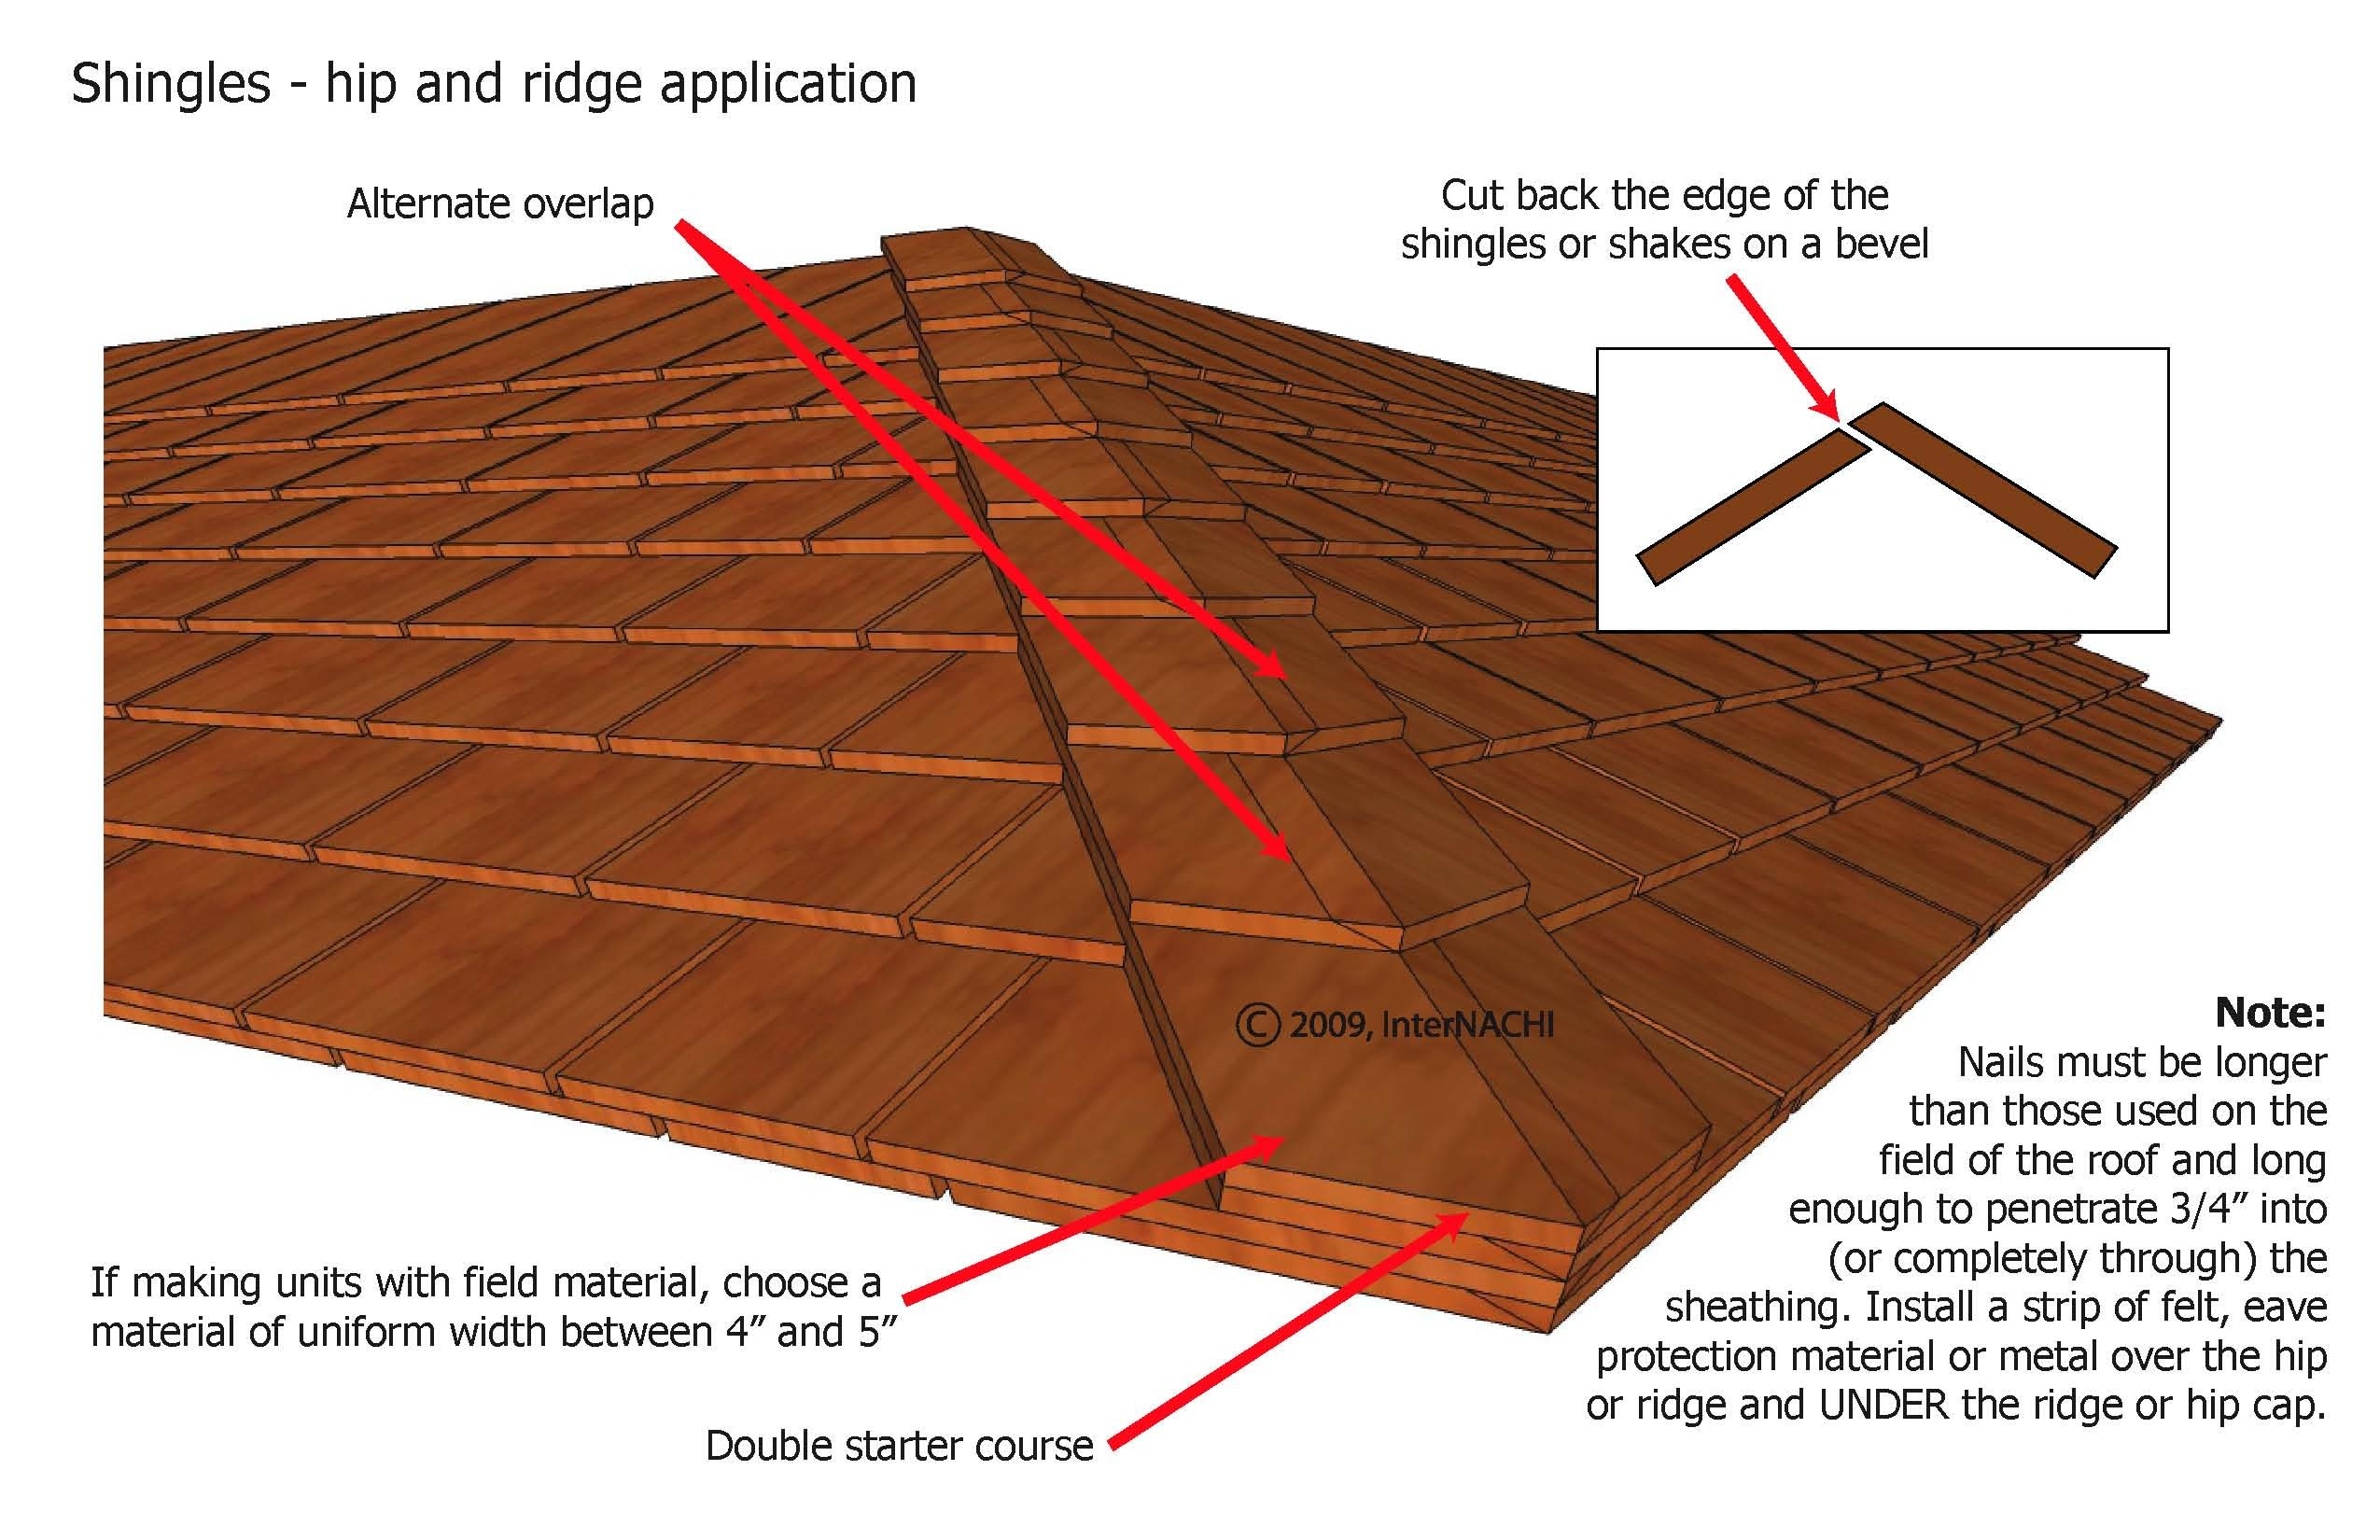 Shingle hip and/or ridge application.